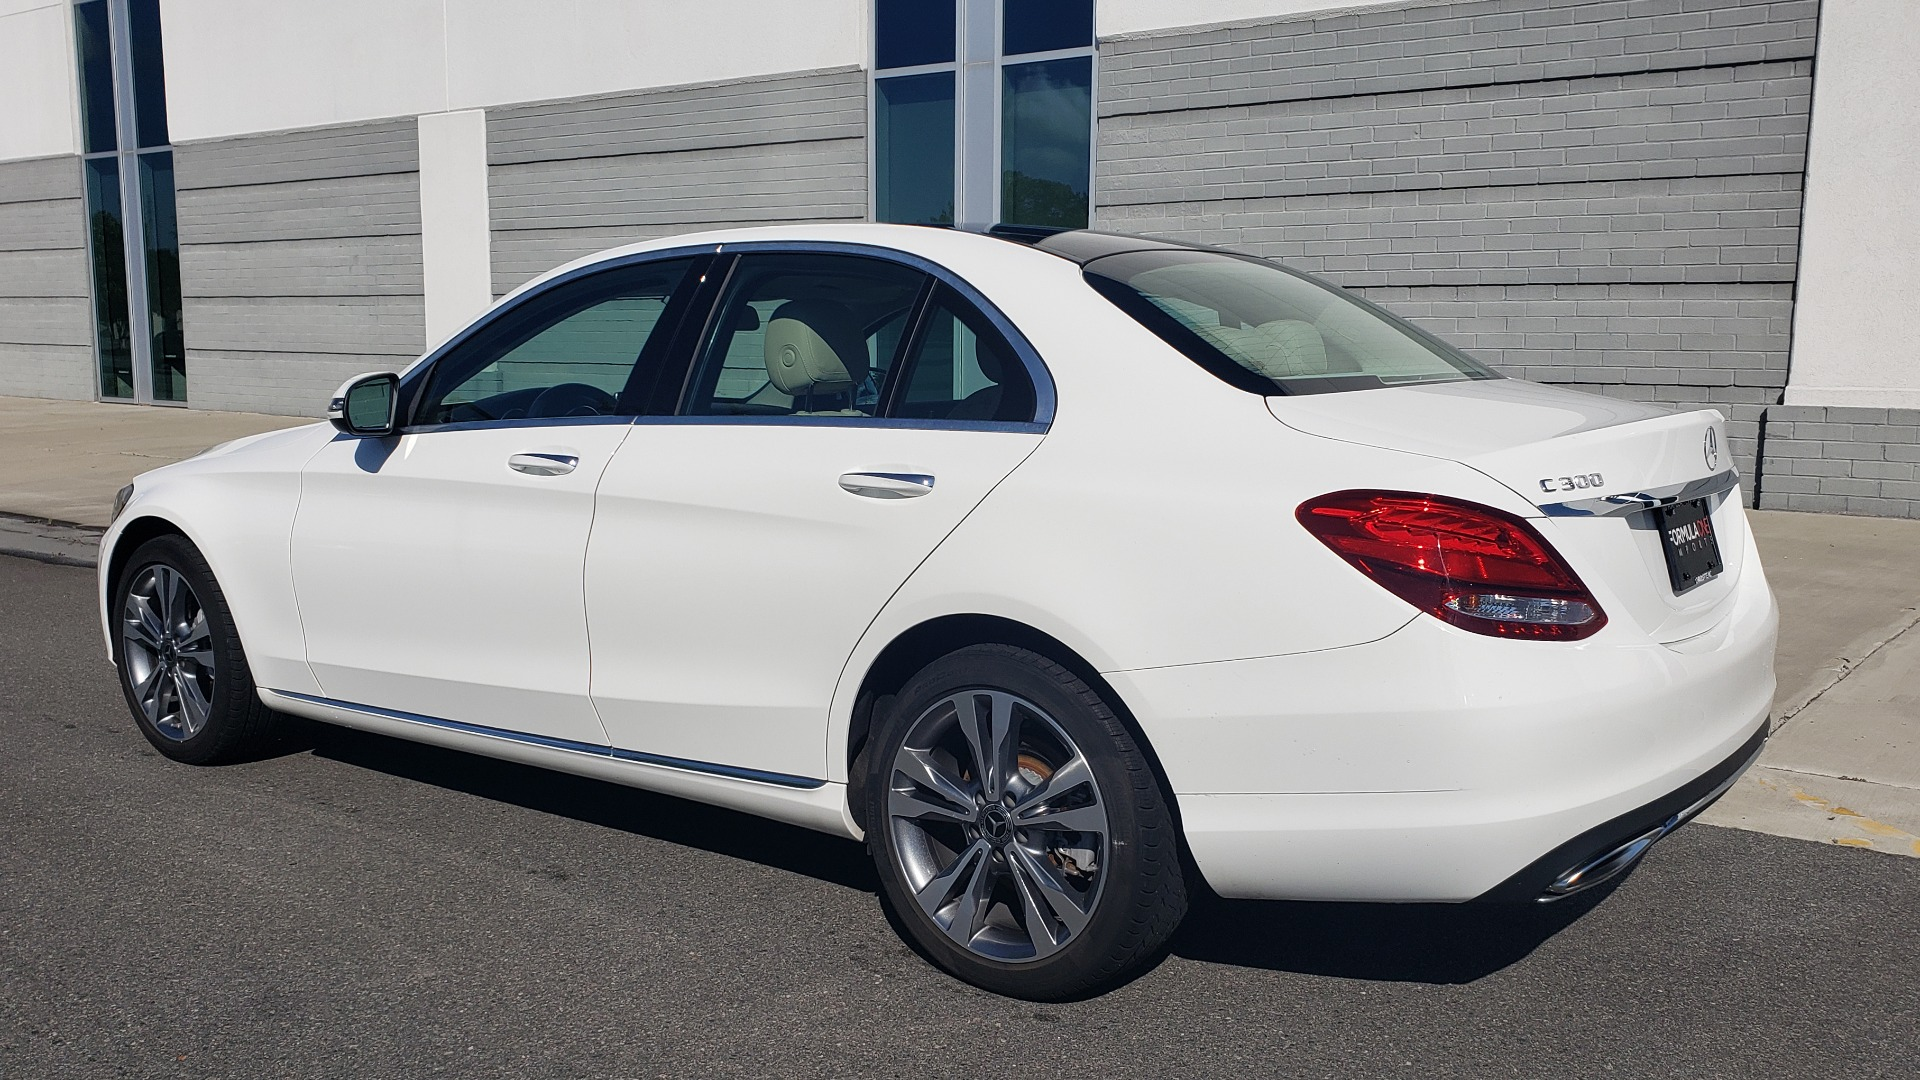 Used 2018 Mercedes-Benz C-Class C 300 4MATIC PREMIUM / APPLE CARPLAY / PANO-ROOF / REARVIEW for sale $33,795 at Formula Imports in Charlotte NC 28227 4